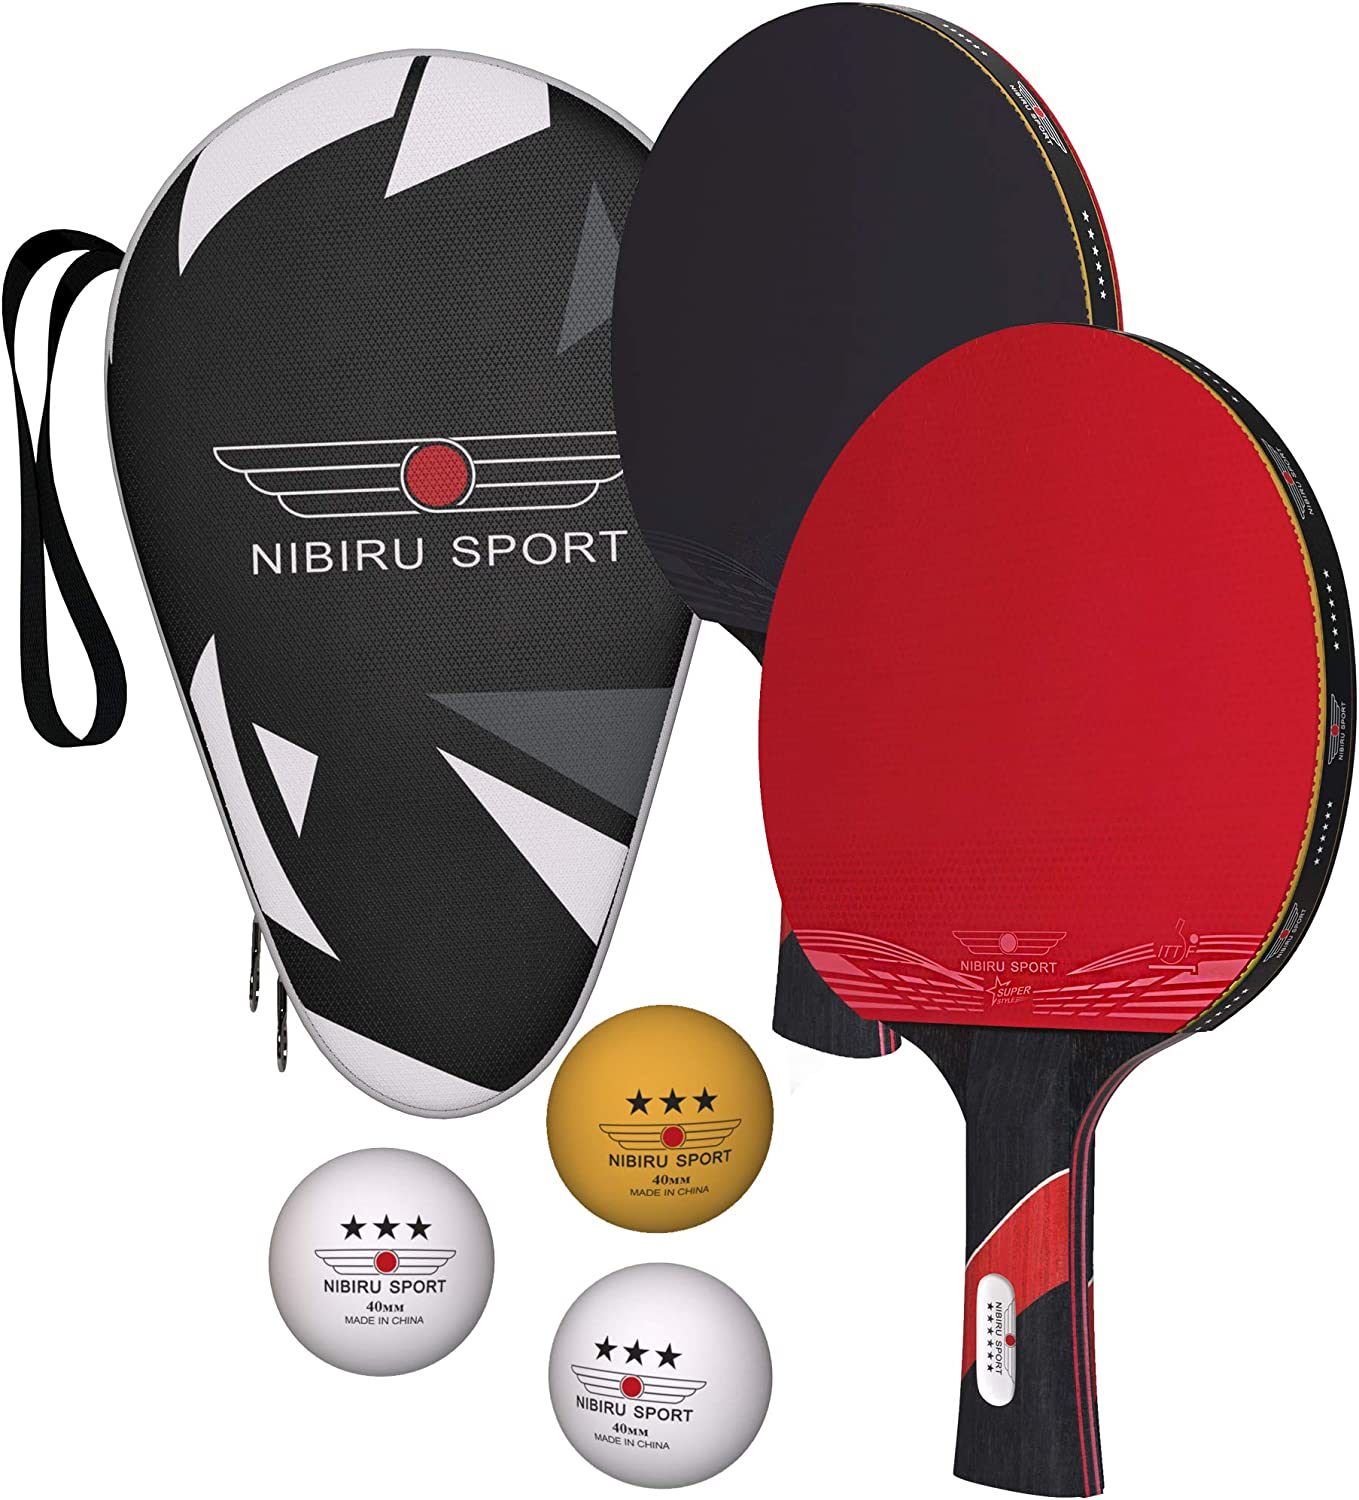 Nibiru Sport Ping Pong Paddles (Set of 2) - Table Tennis Racket Kit w/ 2 Rackets, 3 Balls & Portable Case - Professional Pingpong Paddle, Outdoor Or Indoor Play : Sports & Outdoors